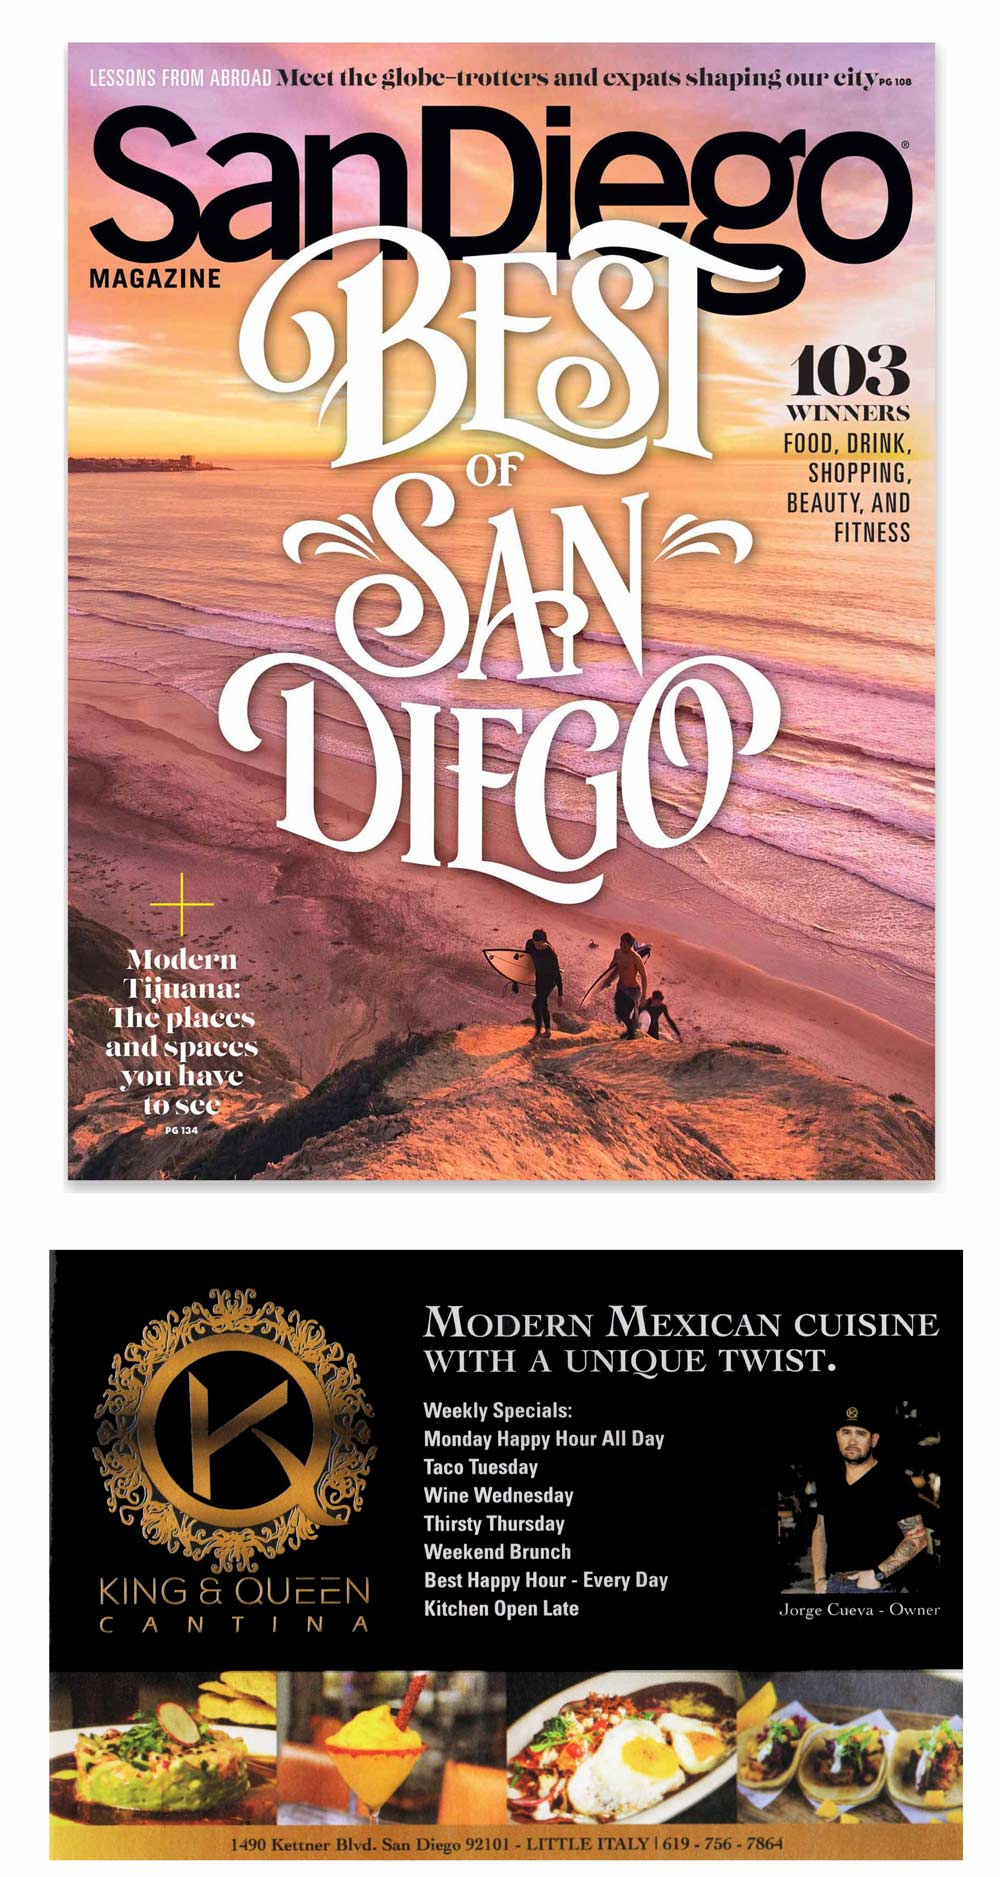 SanDiego magazine cover, best of San Diego, featuring King and Queen cantina